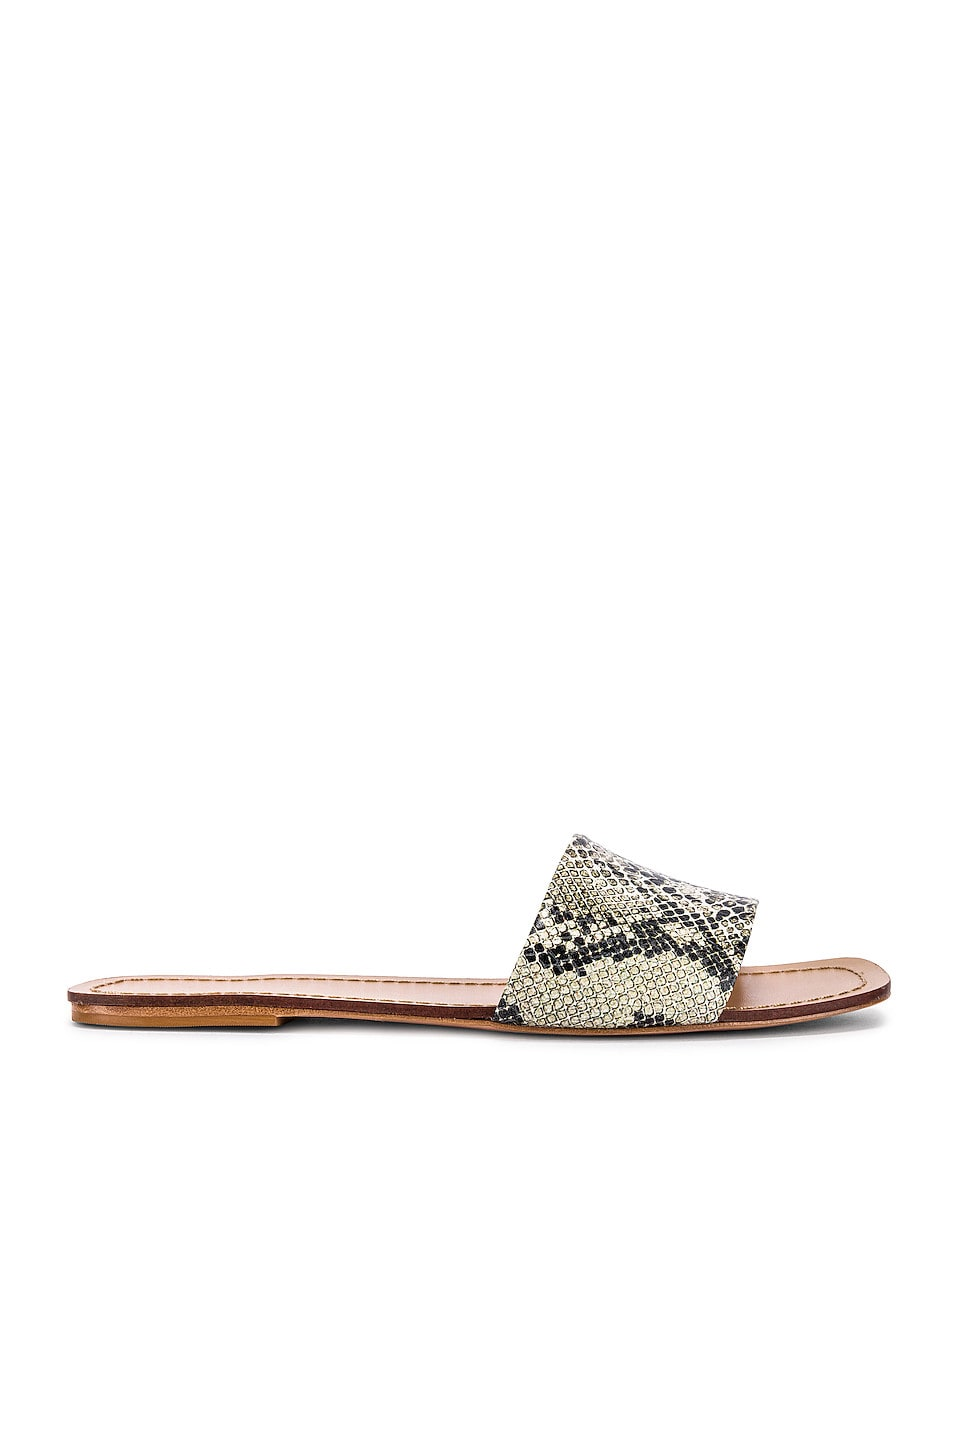 RAYE Houston Sandal in Natural